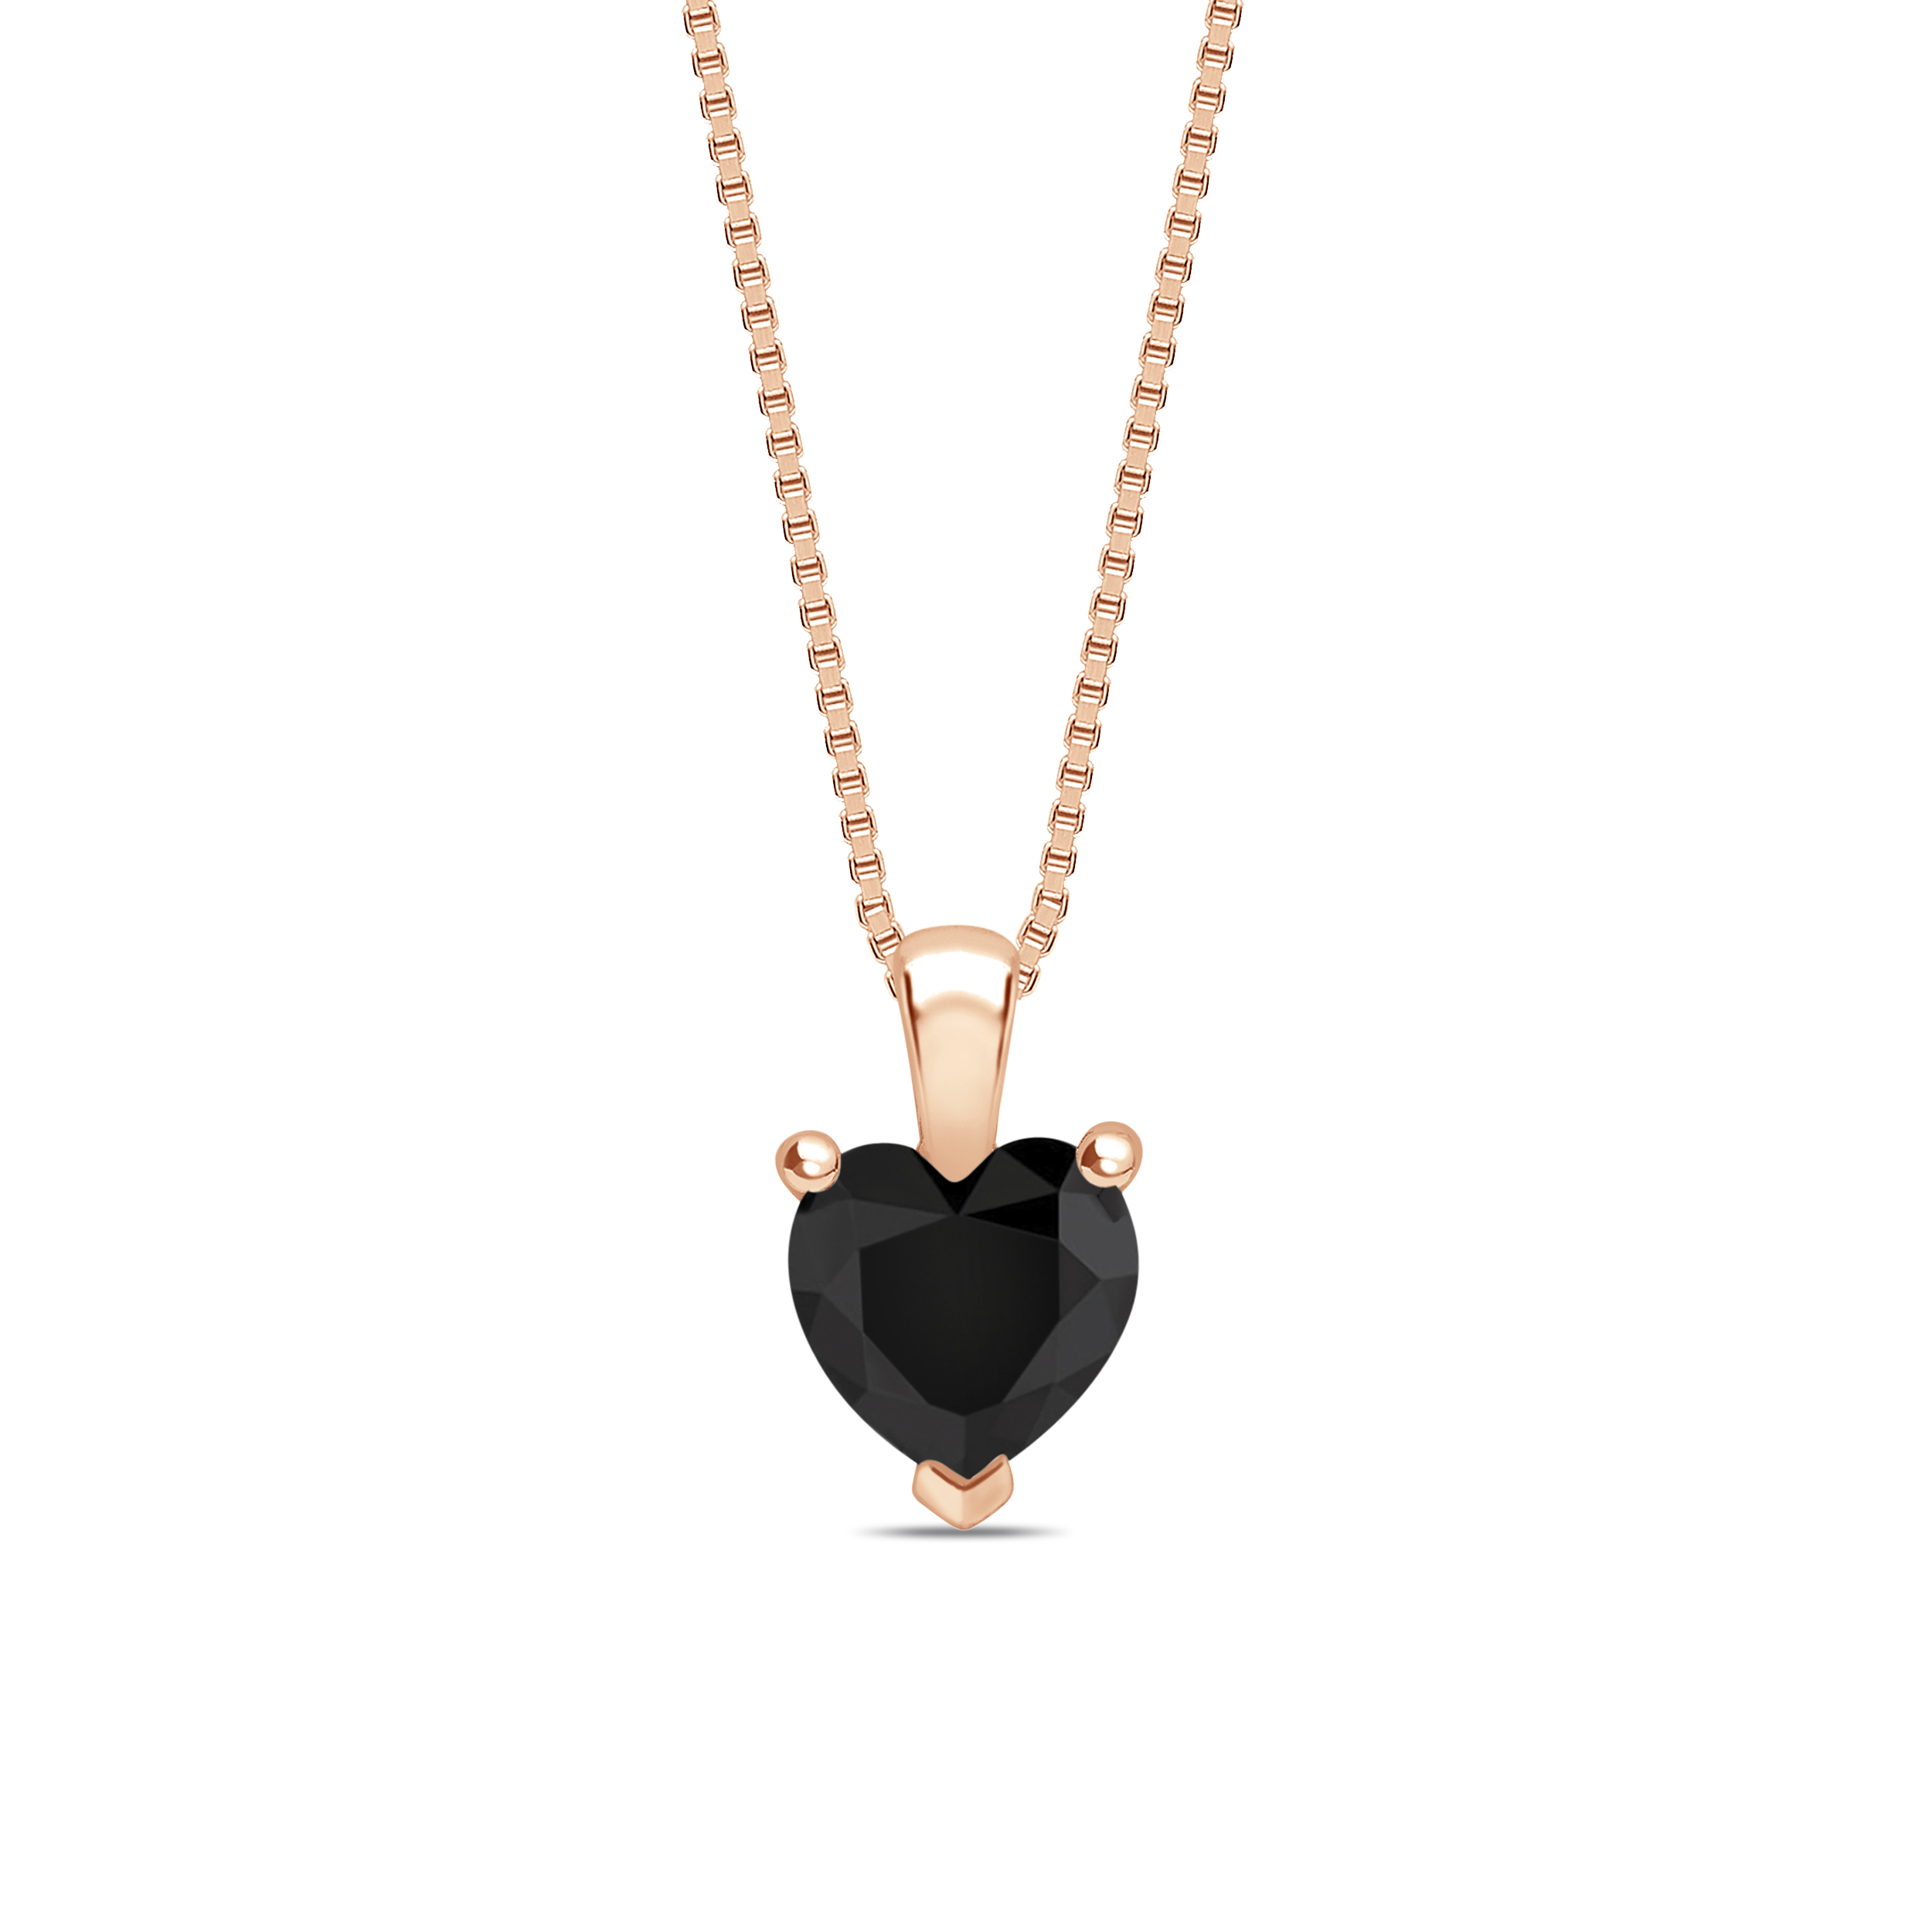 Heart Shape Popular Style Black Diamond Solitaire Pendants Necklace